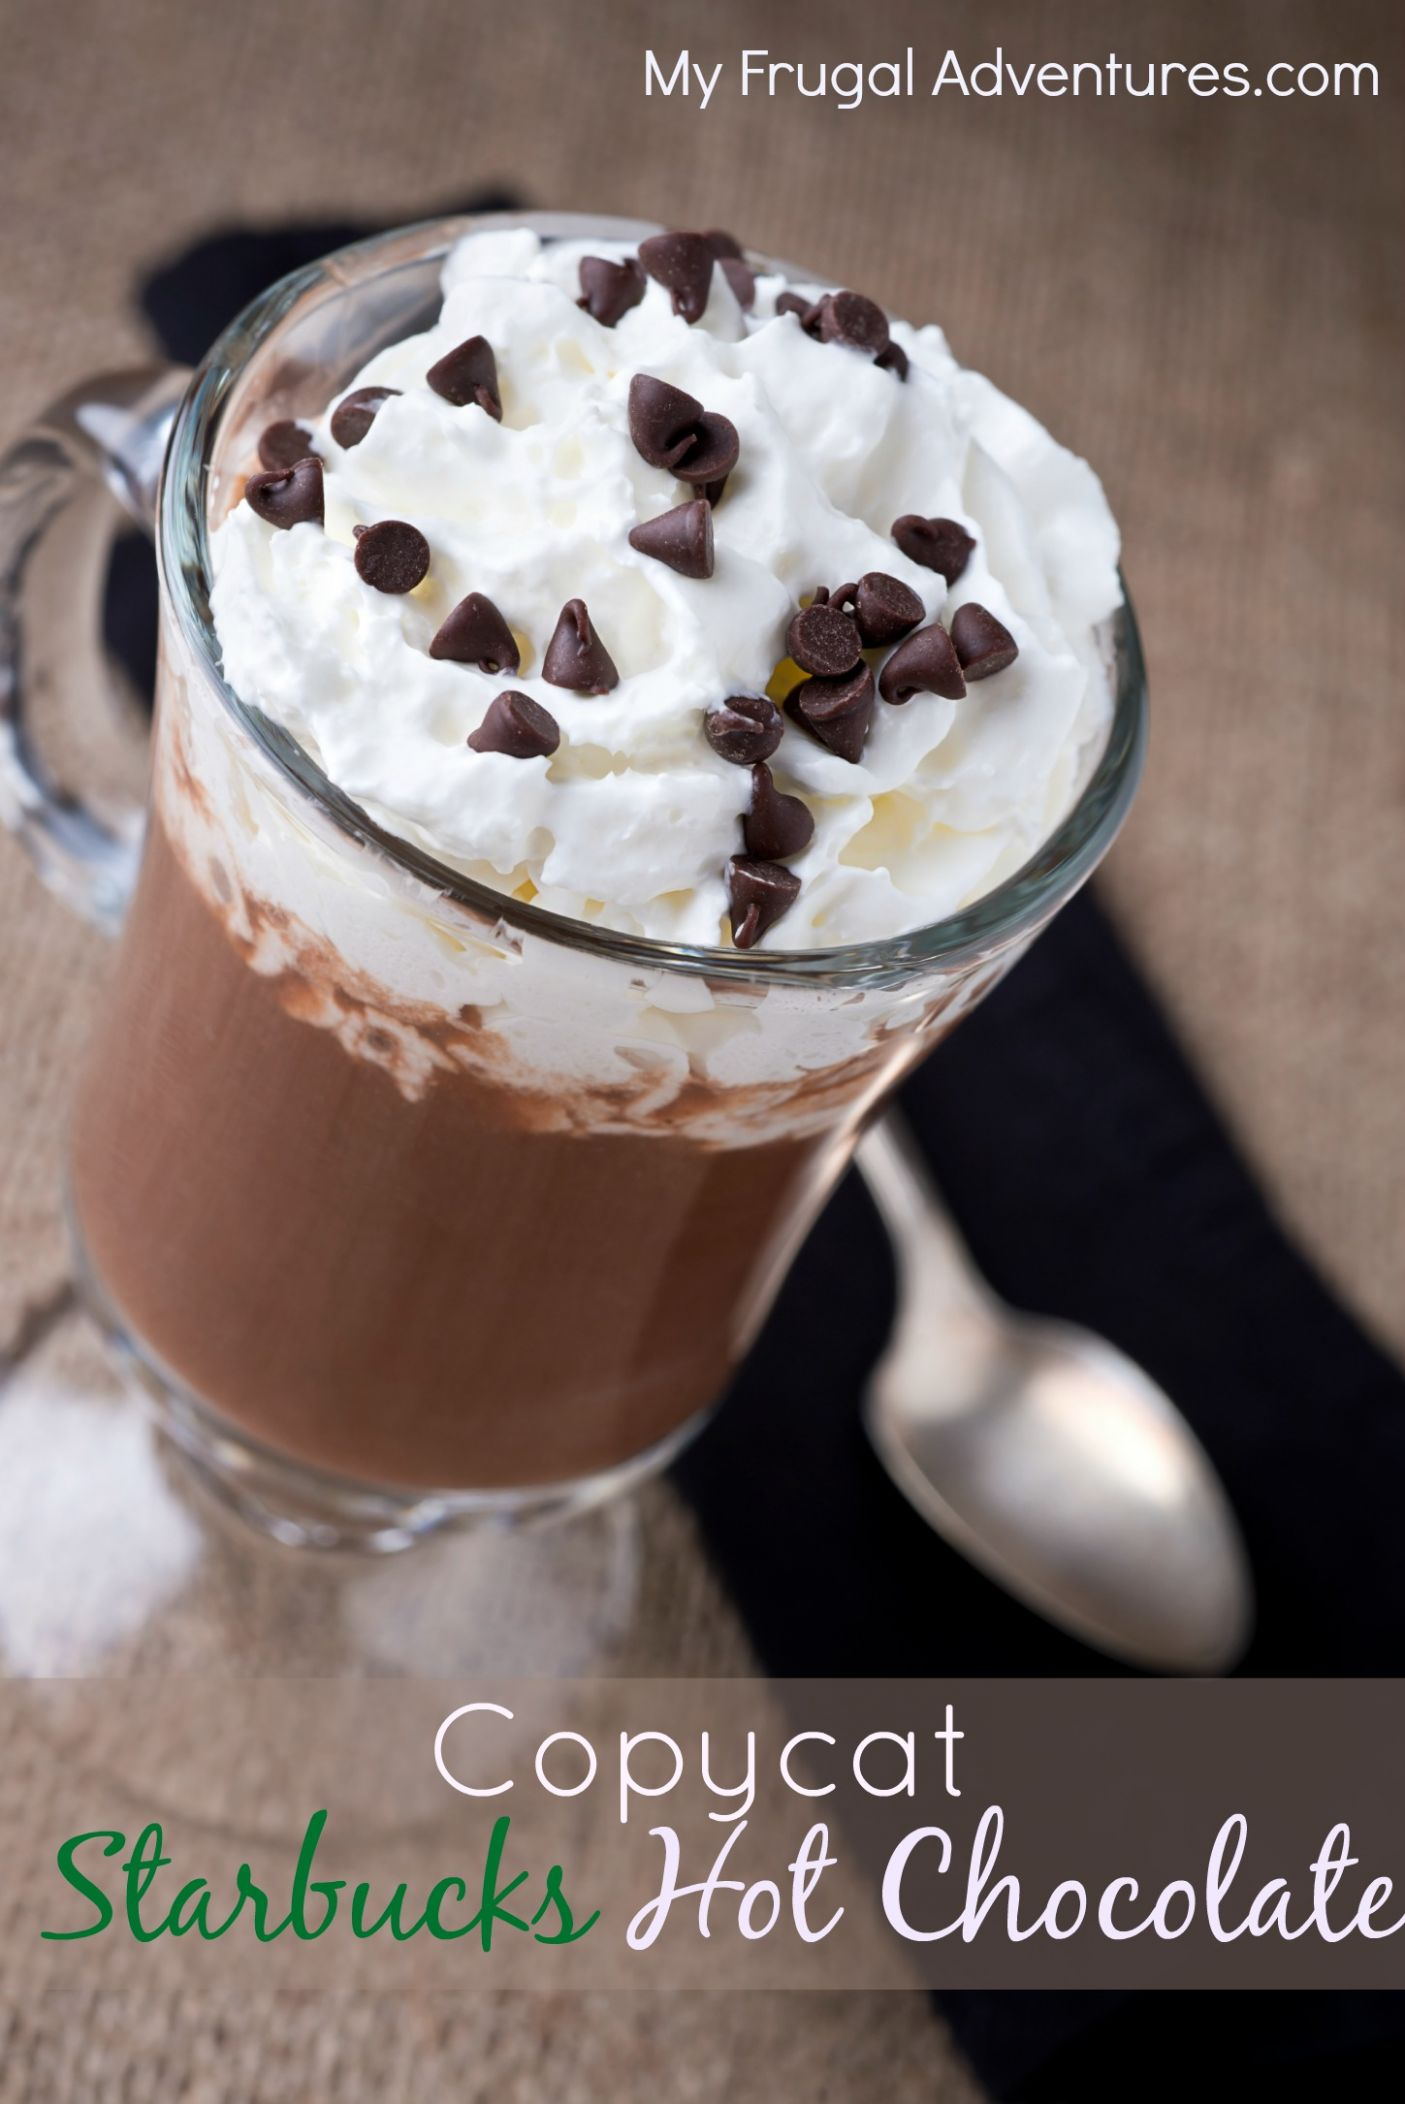 Copycat Starbucks Hot Chocolate Recipe (Quick & Easy!) - Chocolate Recipes Quick And Easy